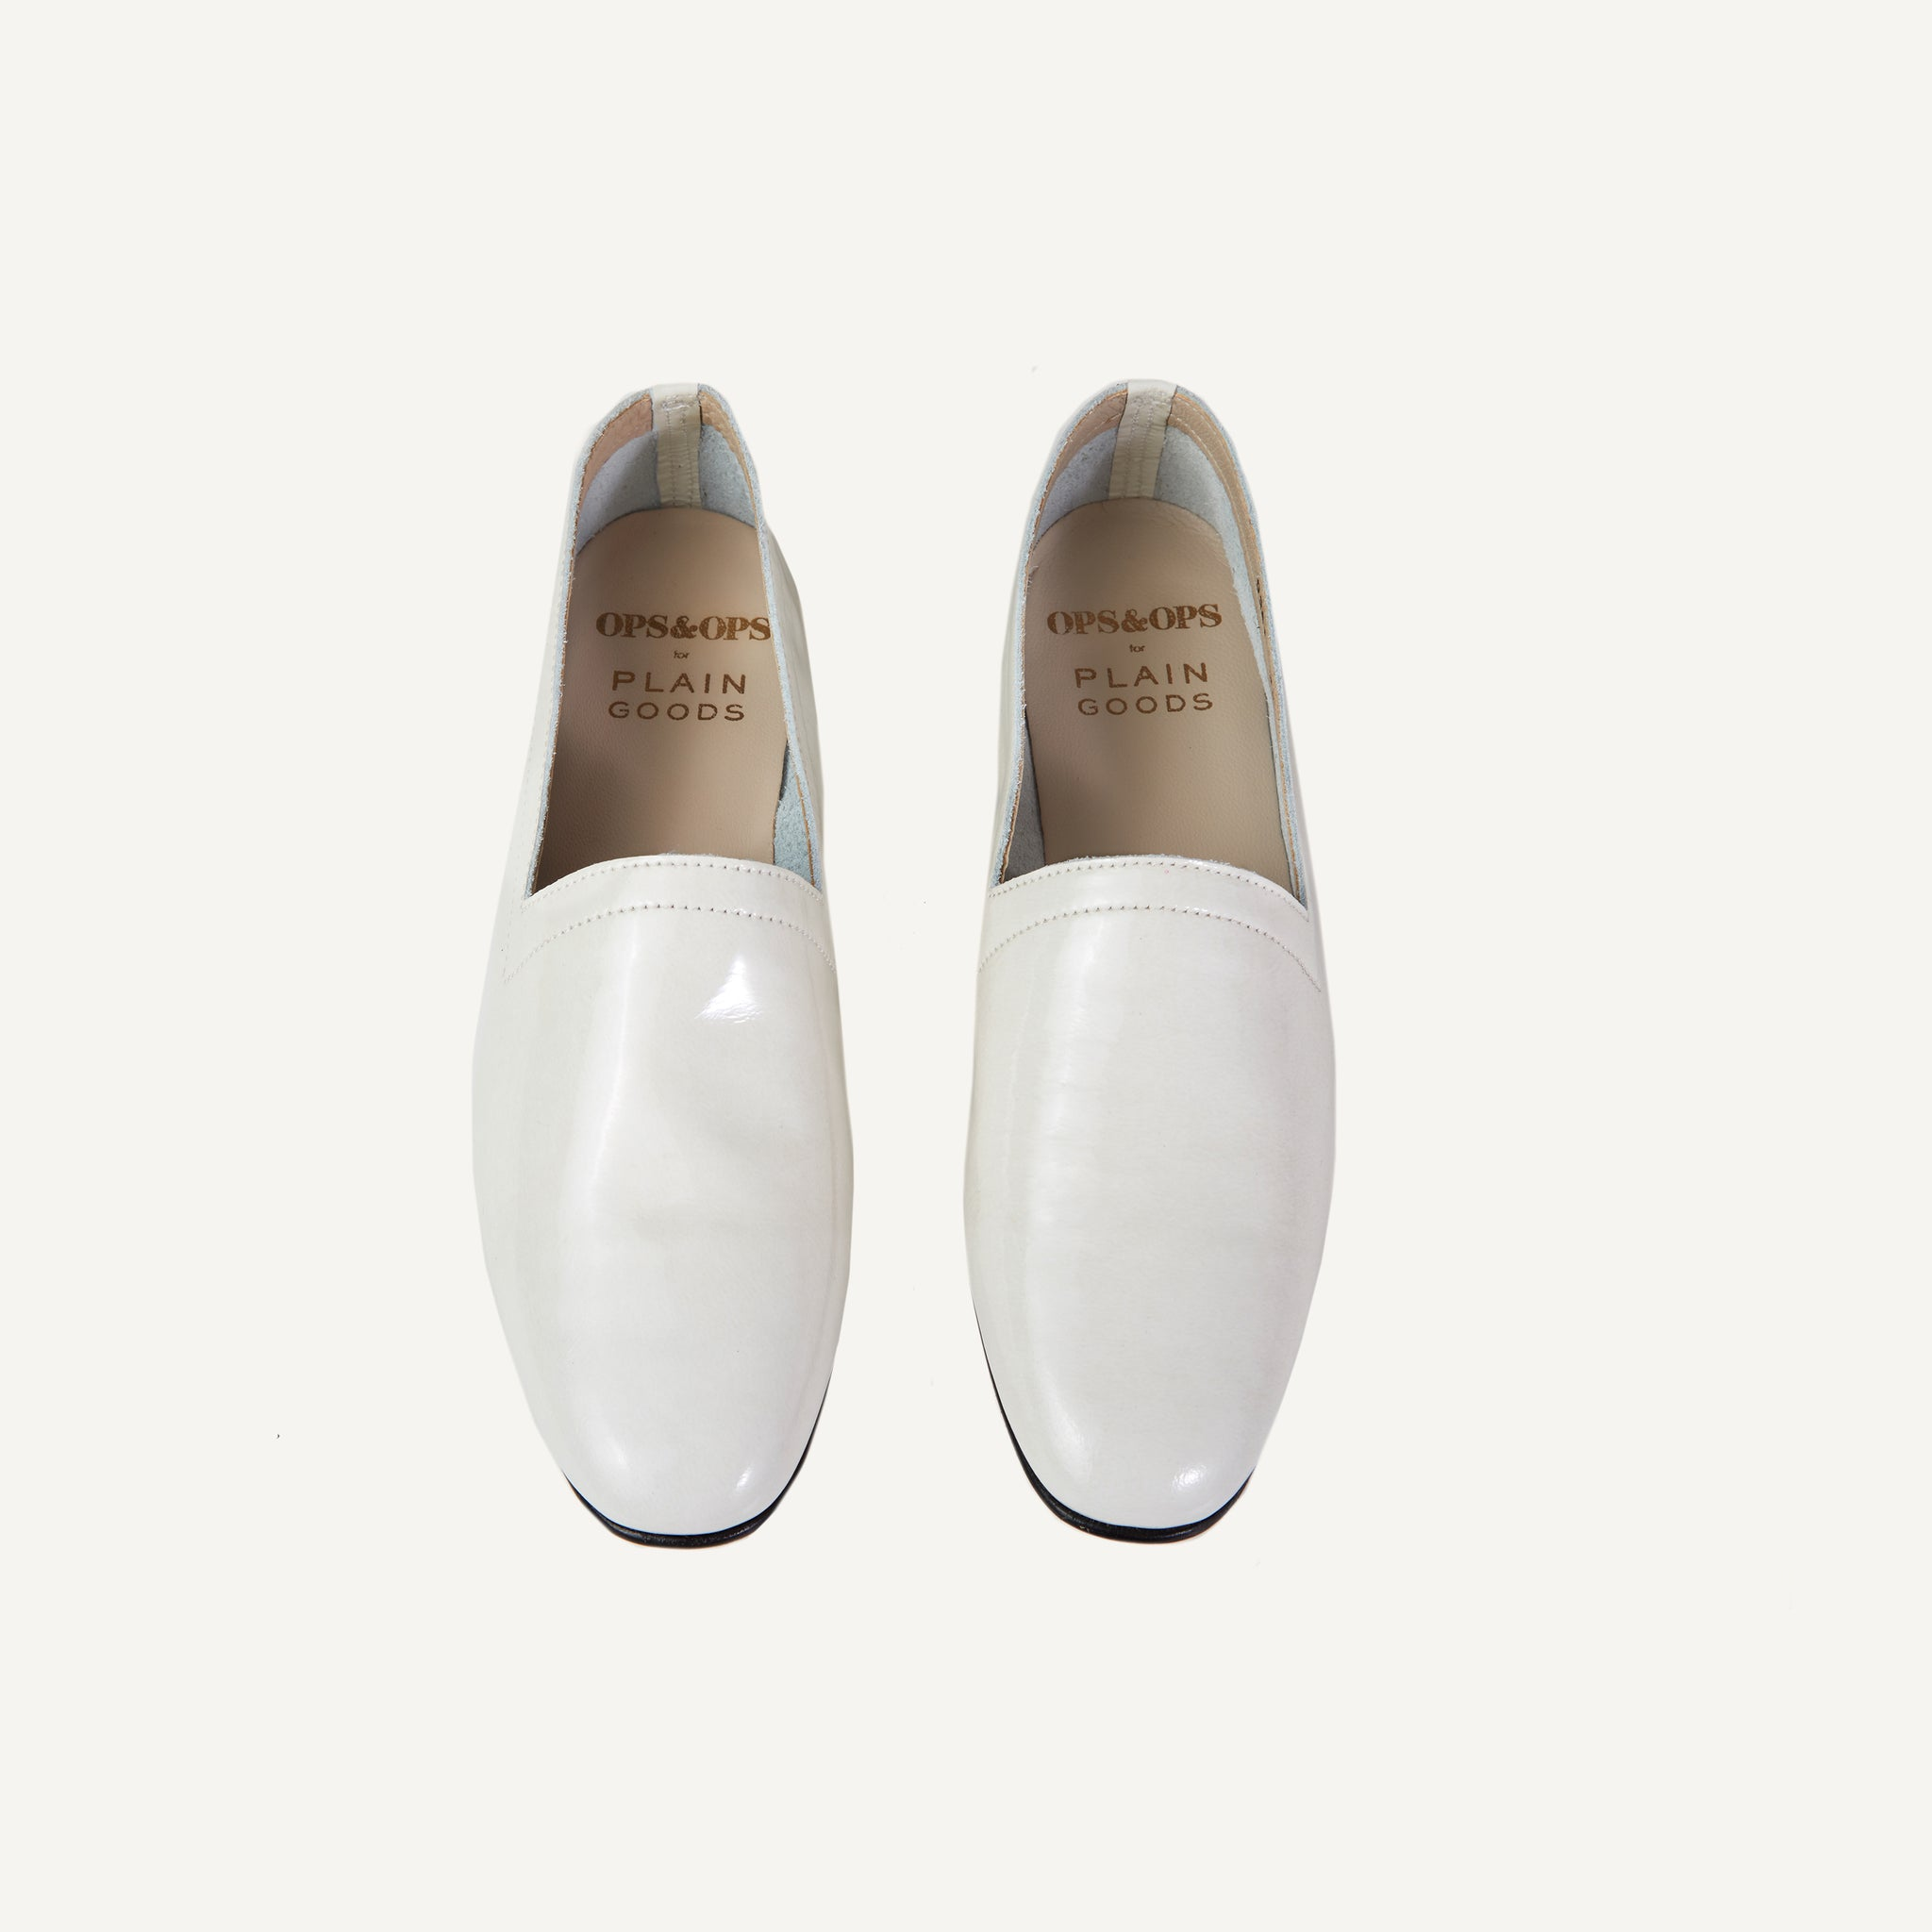 PLAIN GOODS + OPS & OPS WHITE SAND LOAFER